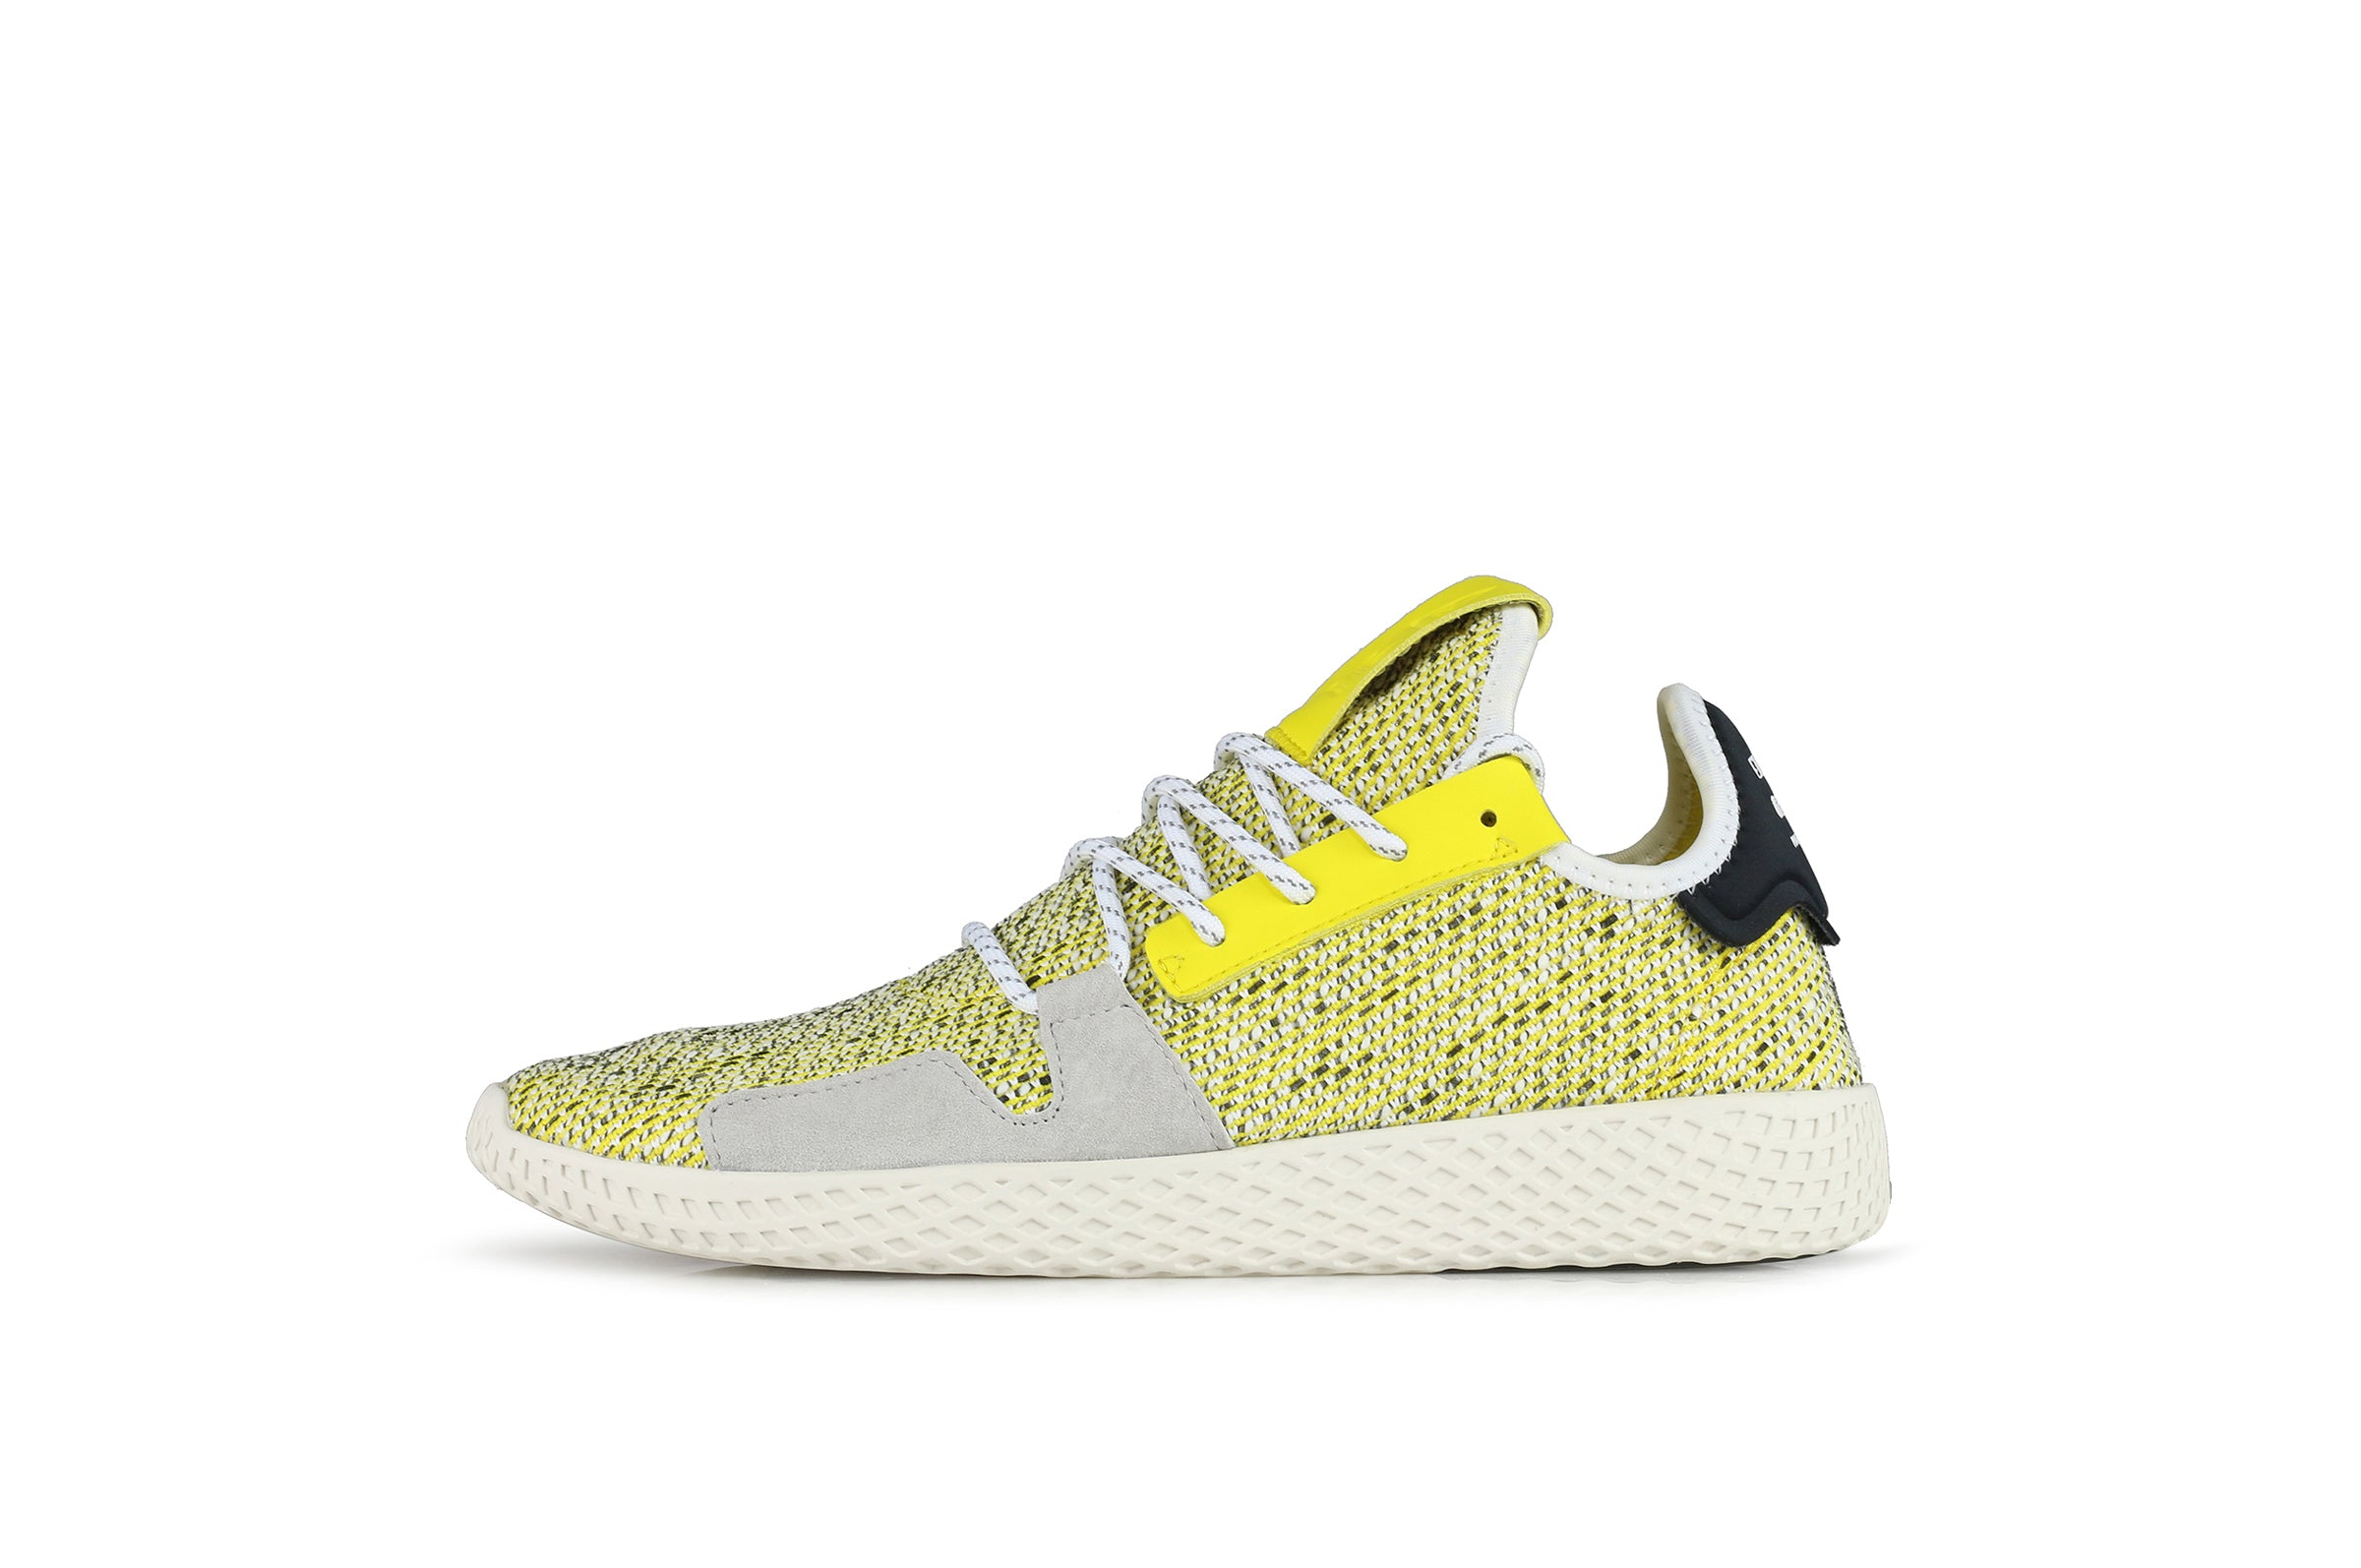 Adidas Afro Tennis HU V2 x Pharrell Williams